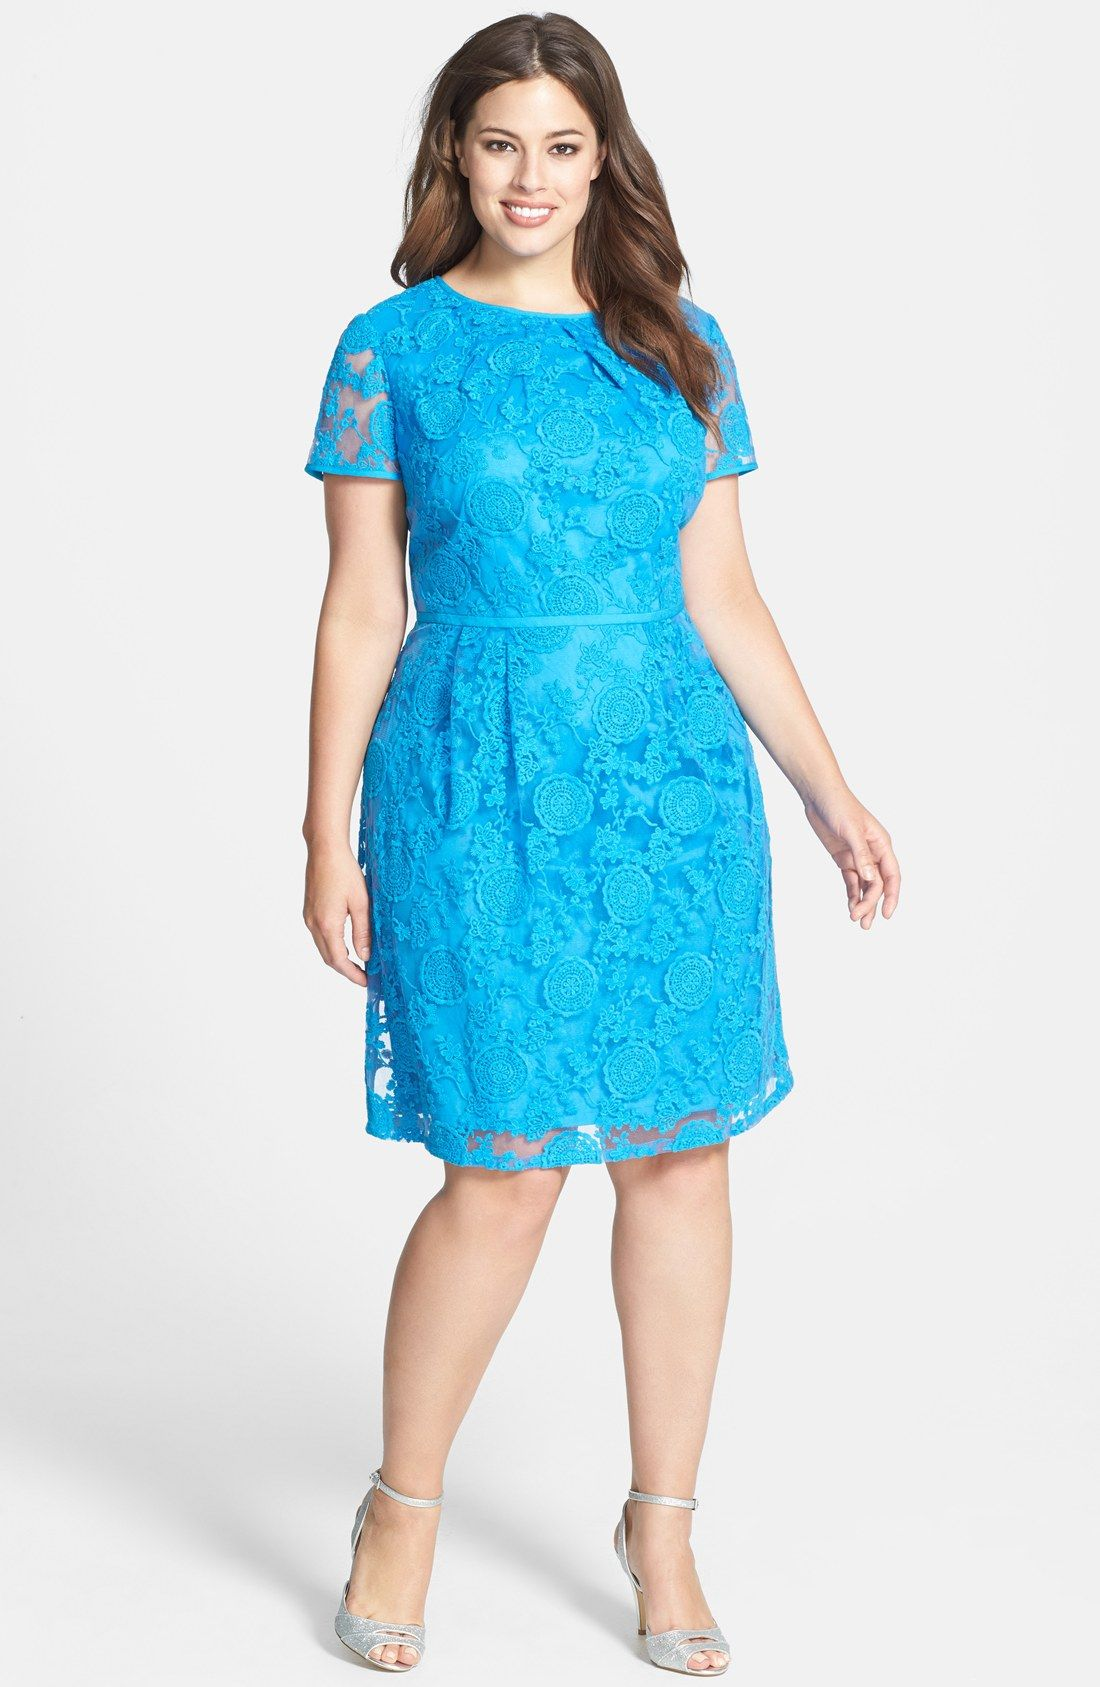 Plus Size Adrianna Papell Lace Dress From Nordstrom - PLUS Model Mag ...